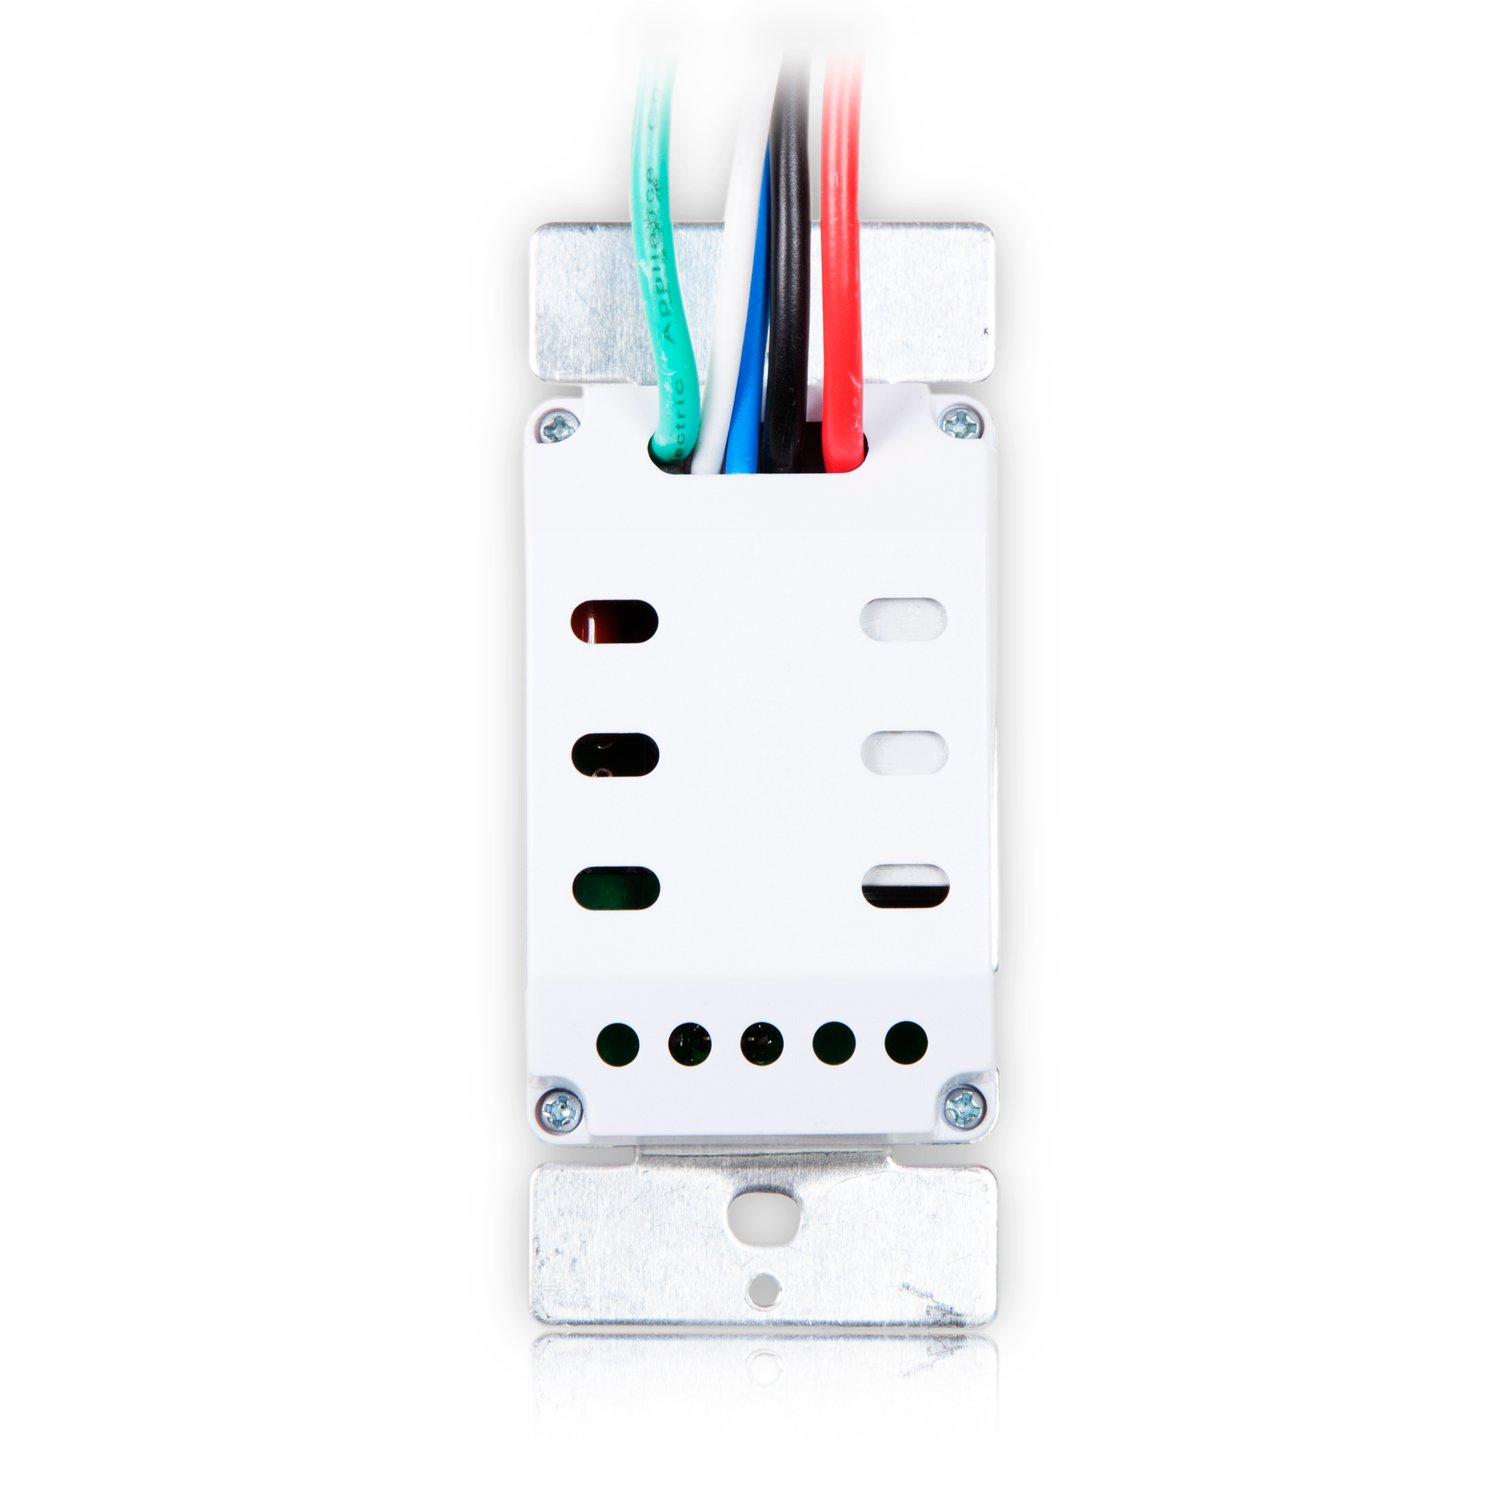 Maxxima Digital In Wall 7 Day Programmable Timer Light Switch Up To 3 Way Plate 18 On Off Settings Adjusts For Daylight Savings Time Compatible